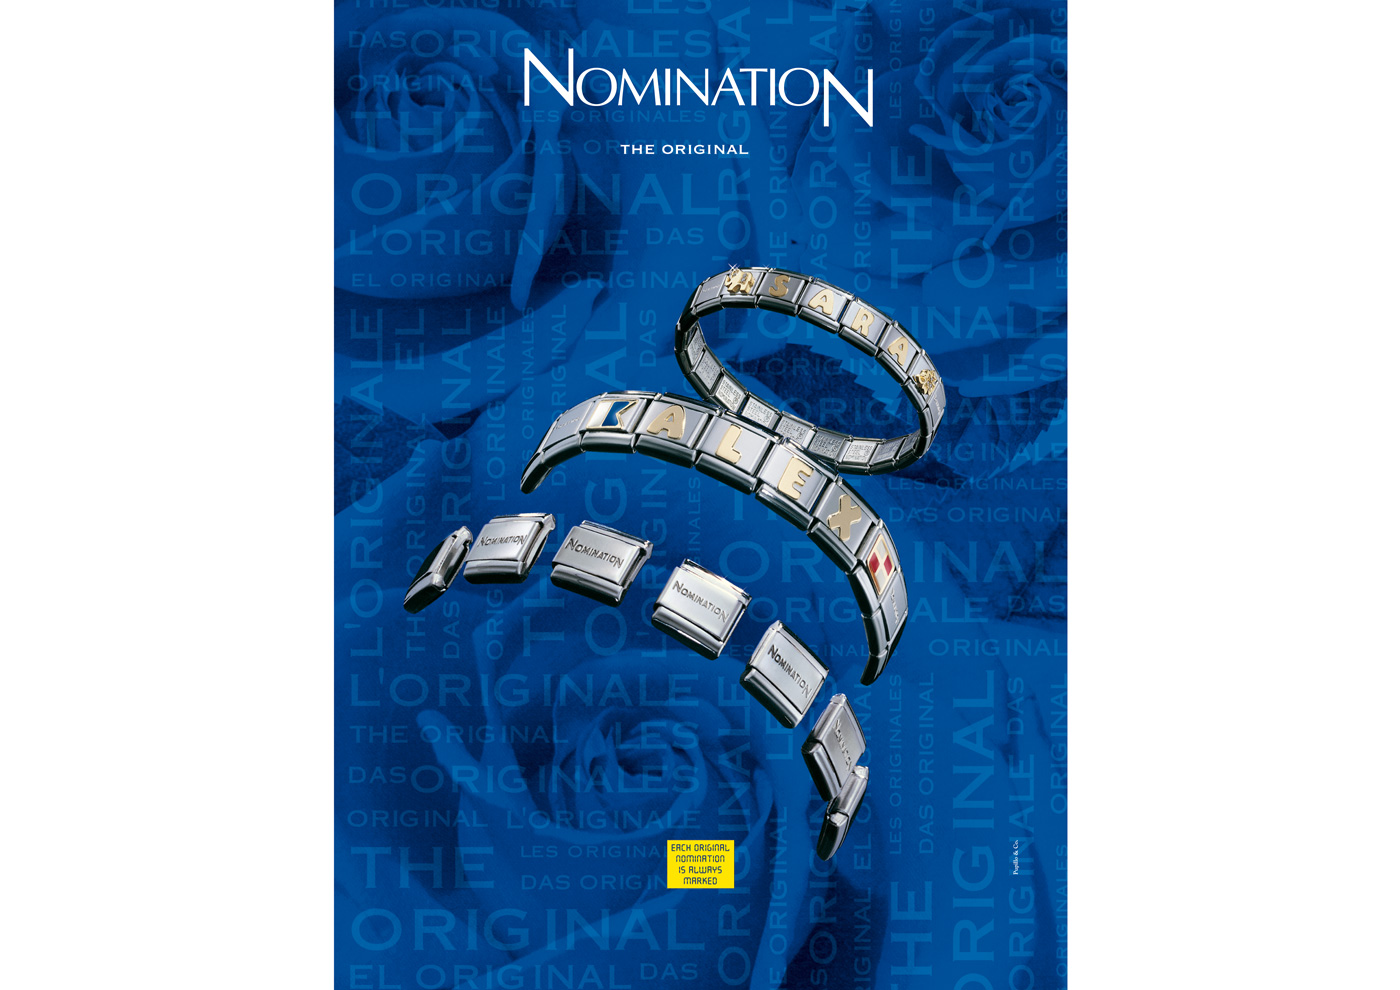 Advertising: NOMINATION